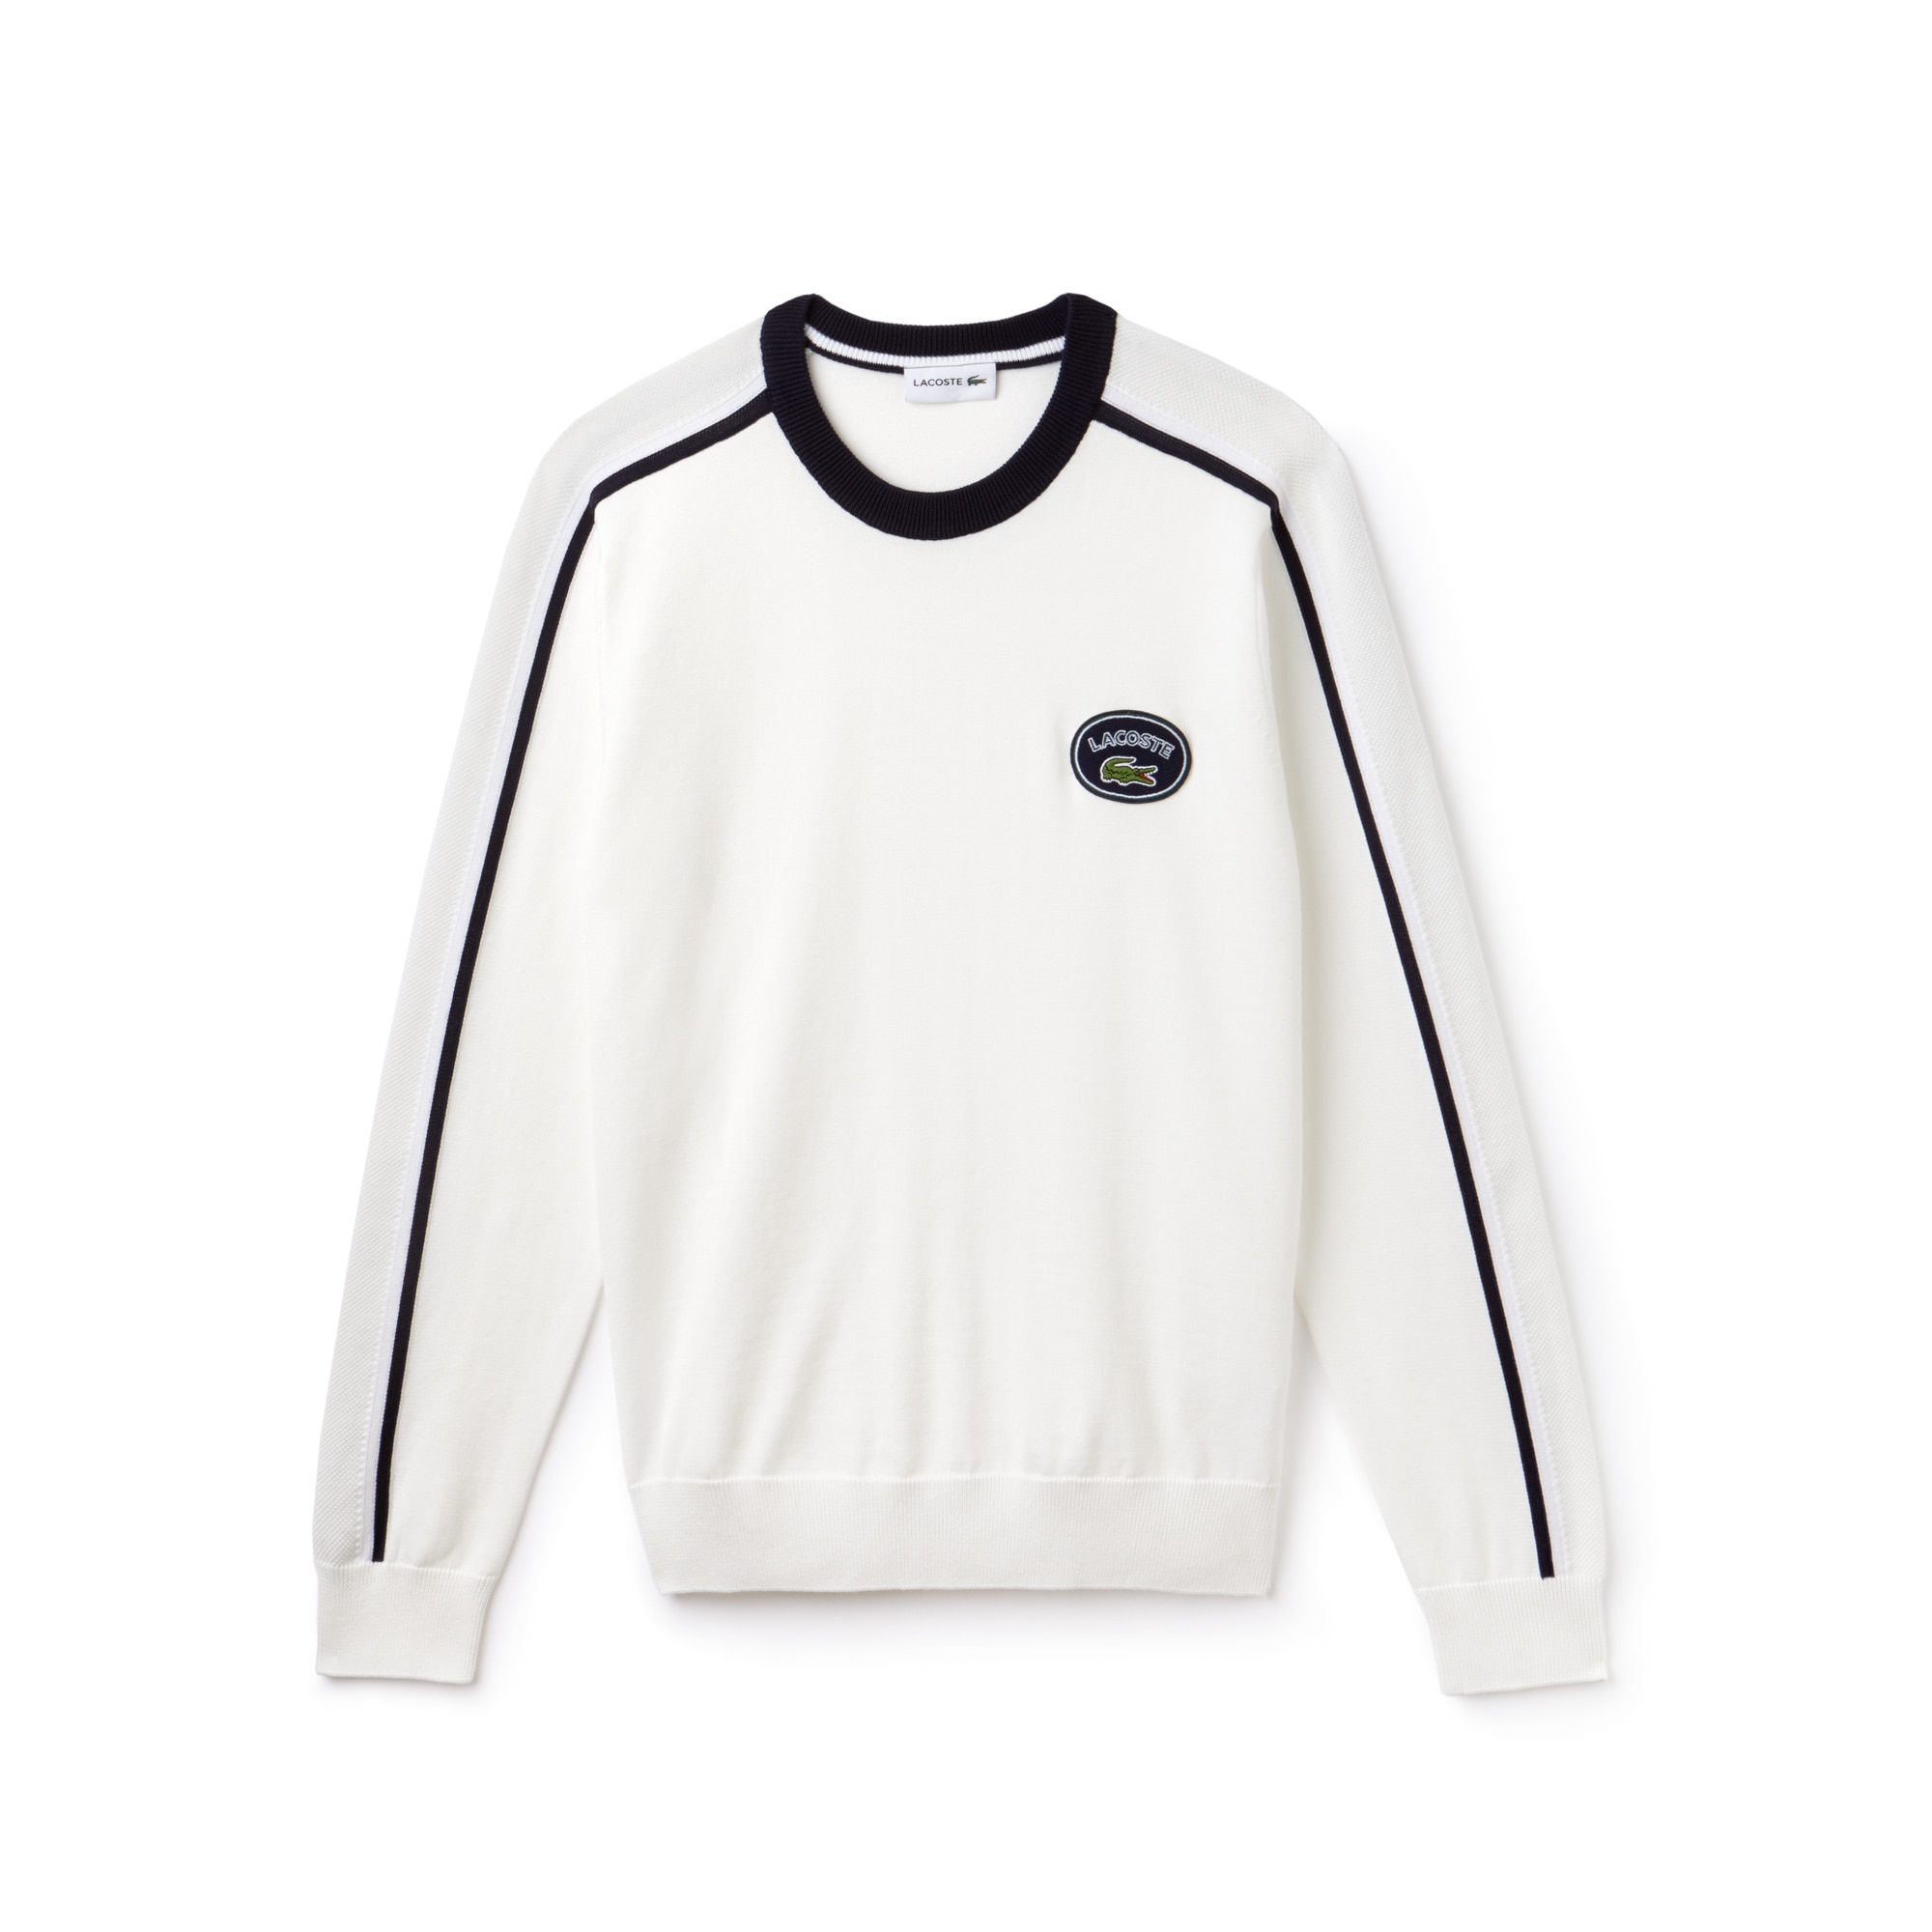 Men's Crew Neck Contrast Accents Cotton Jersey Sweater